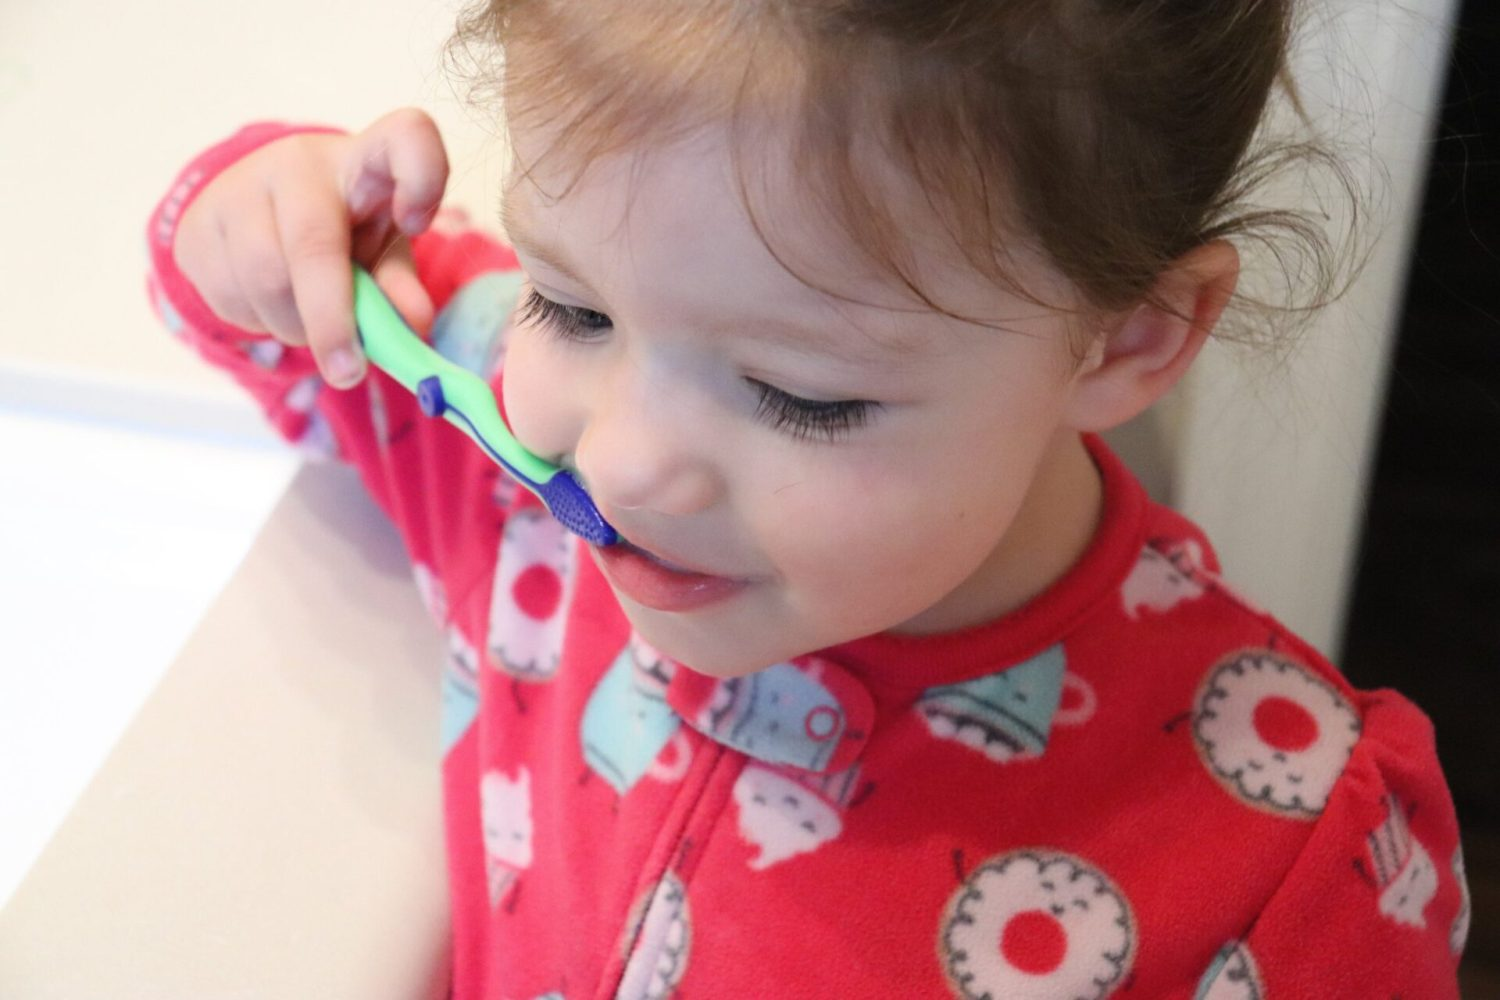 Do you struggle to get your toddlers to brush their teeth? We have the simple tips you need to help make toddler tooth brushing fun!